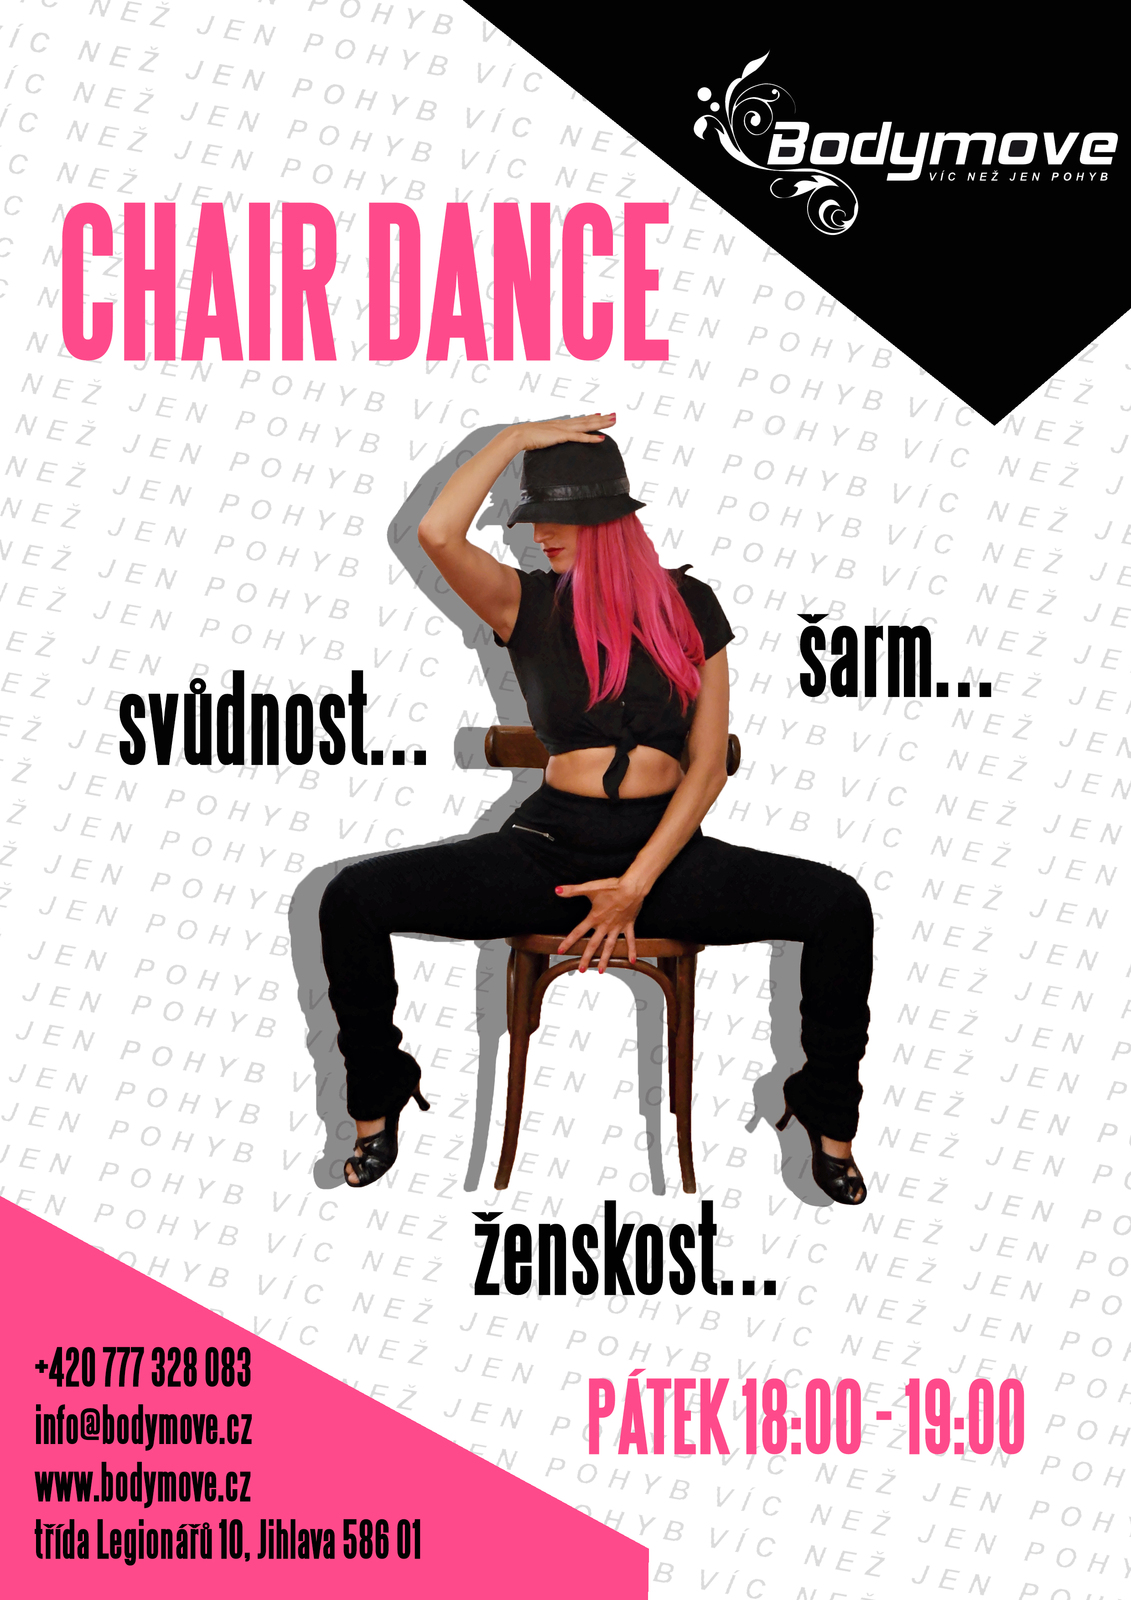 ChairDance.jpg